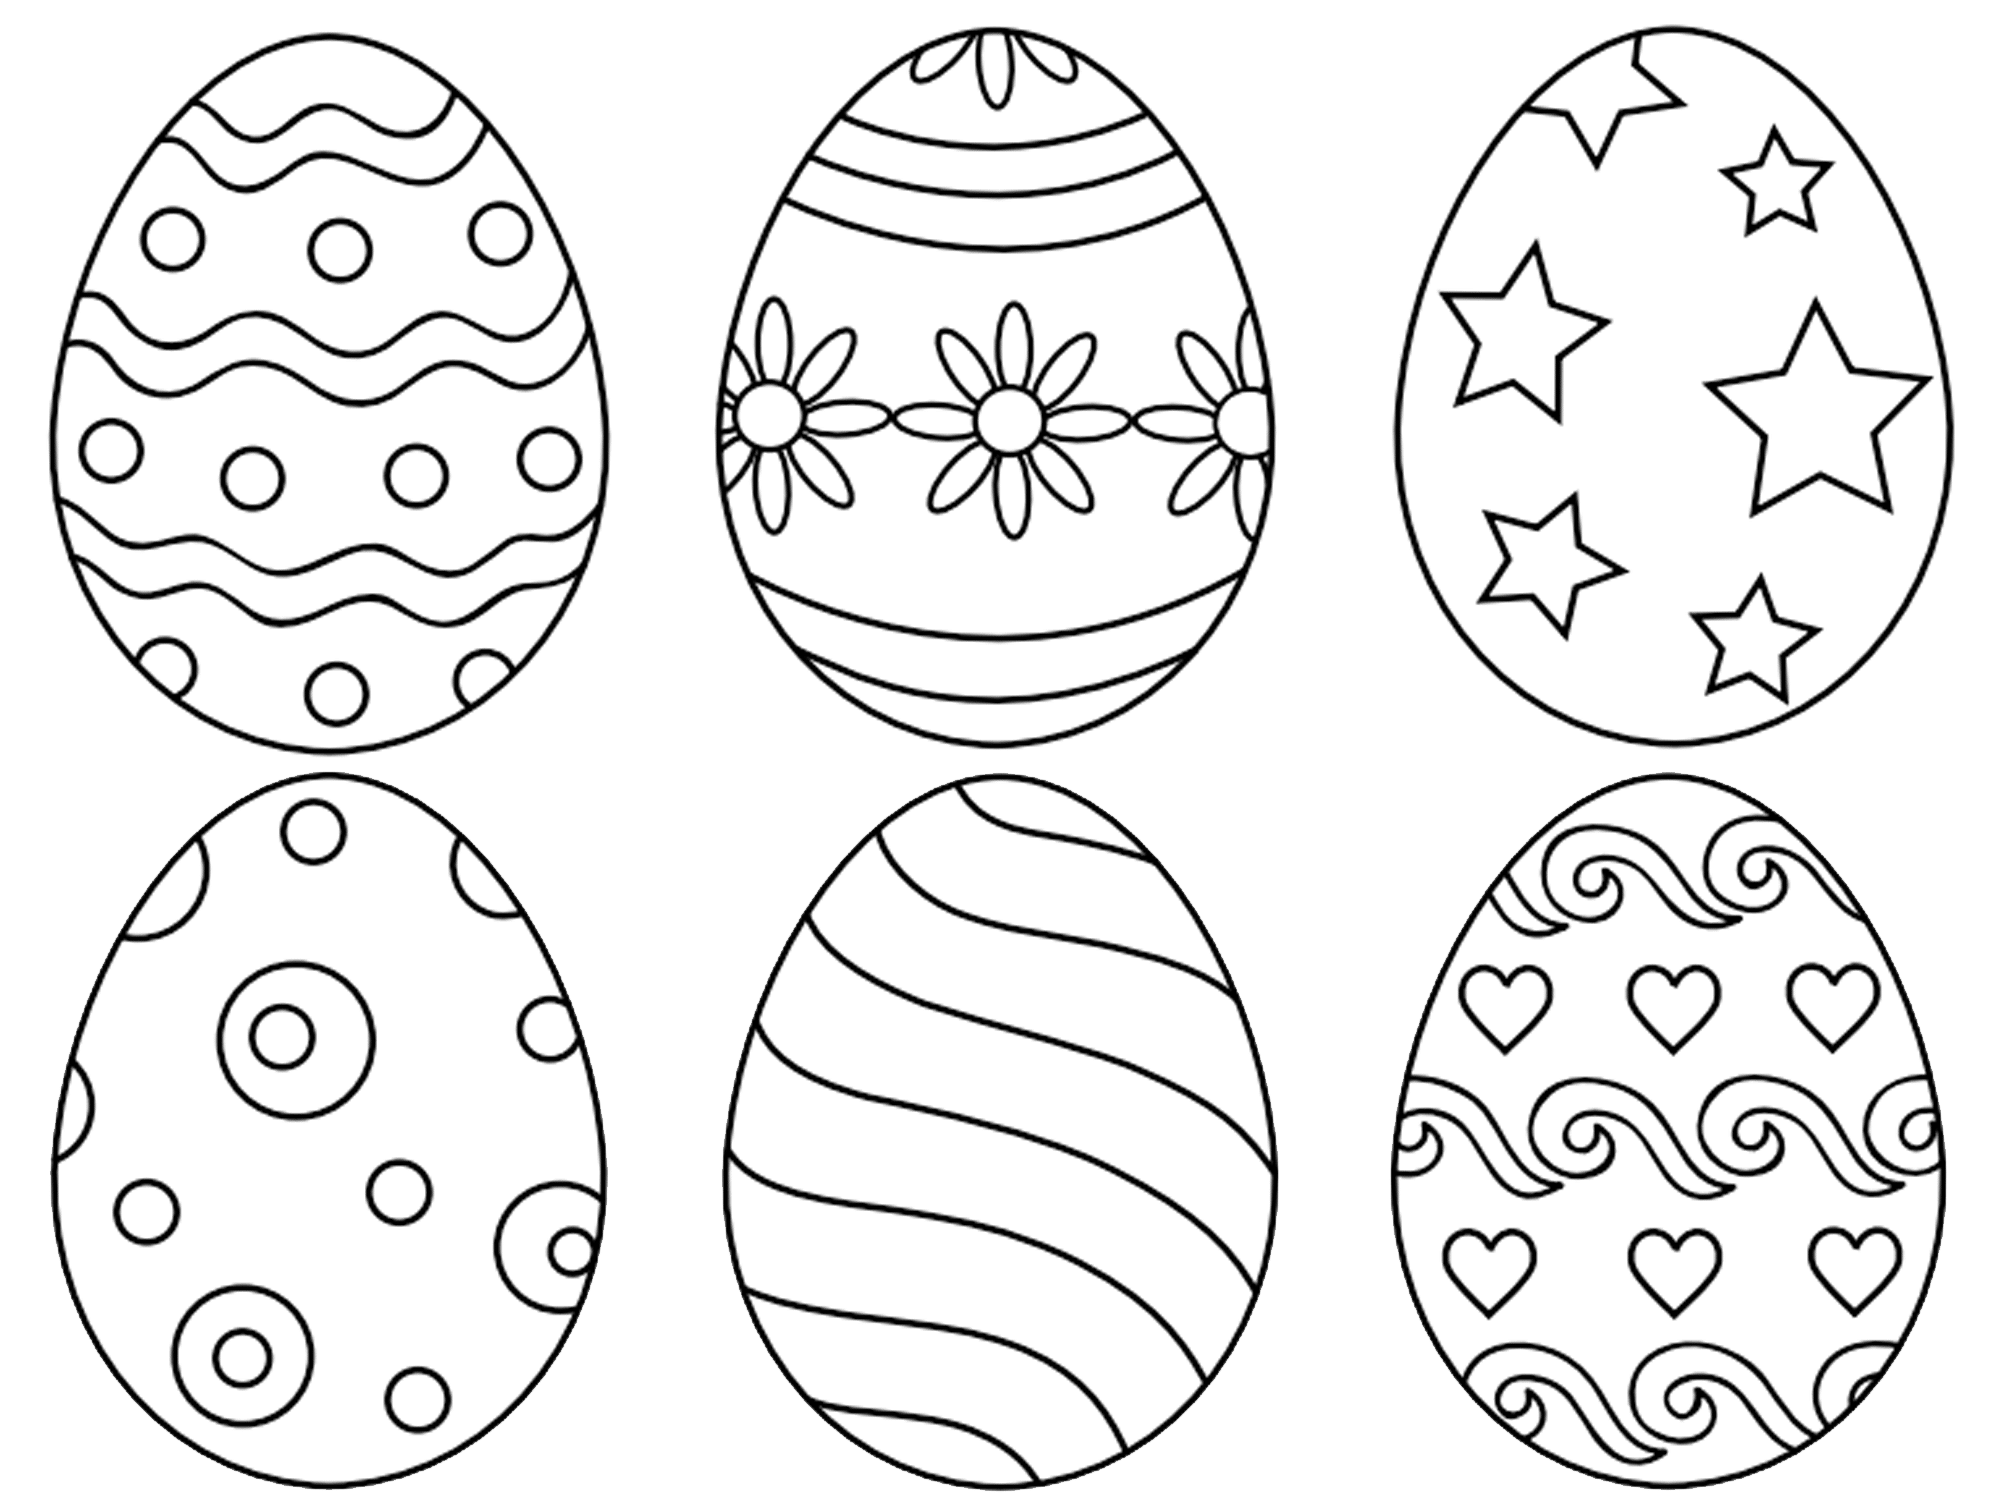 2000x1500 Coloring Pages Of Easter Eggs Color Bros In Sharry Easter Eggs